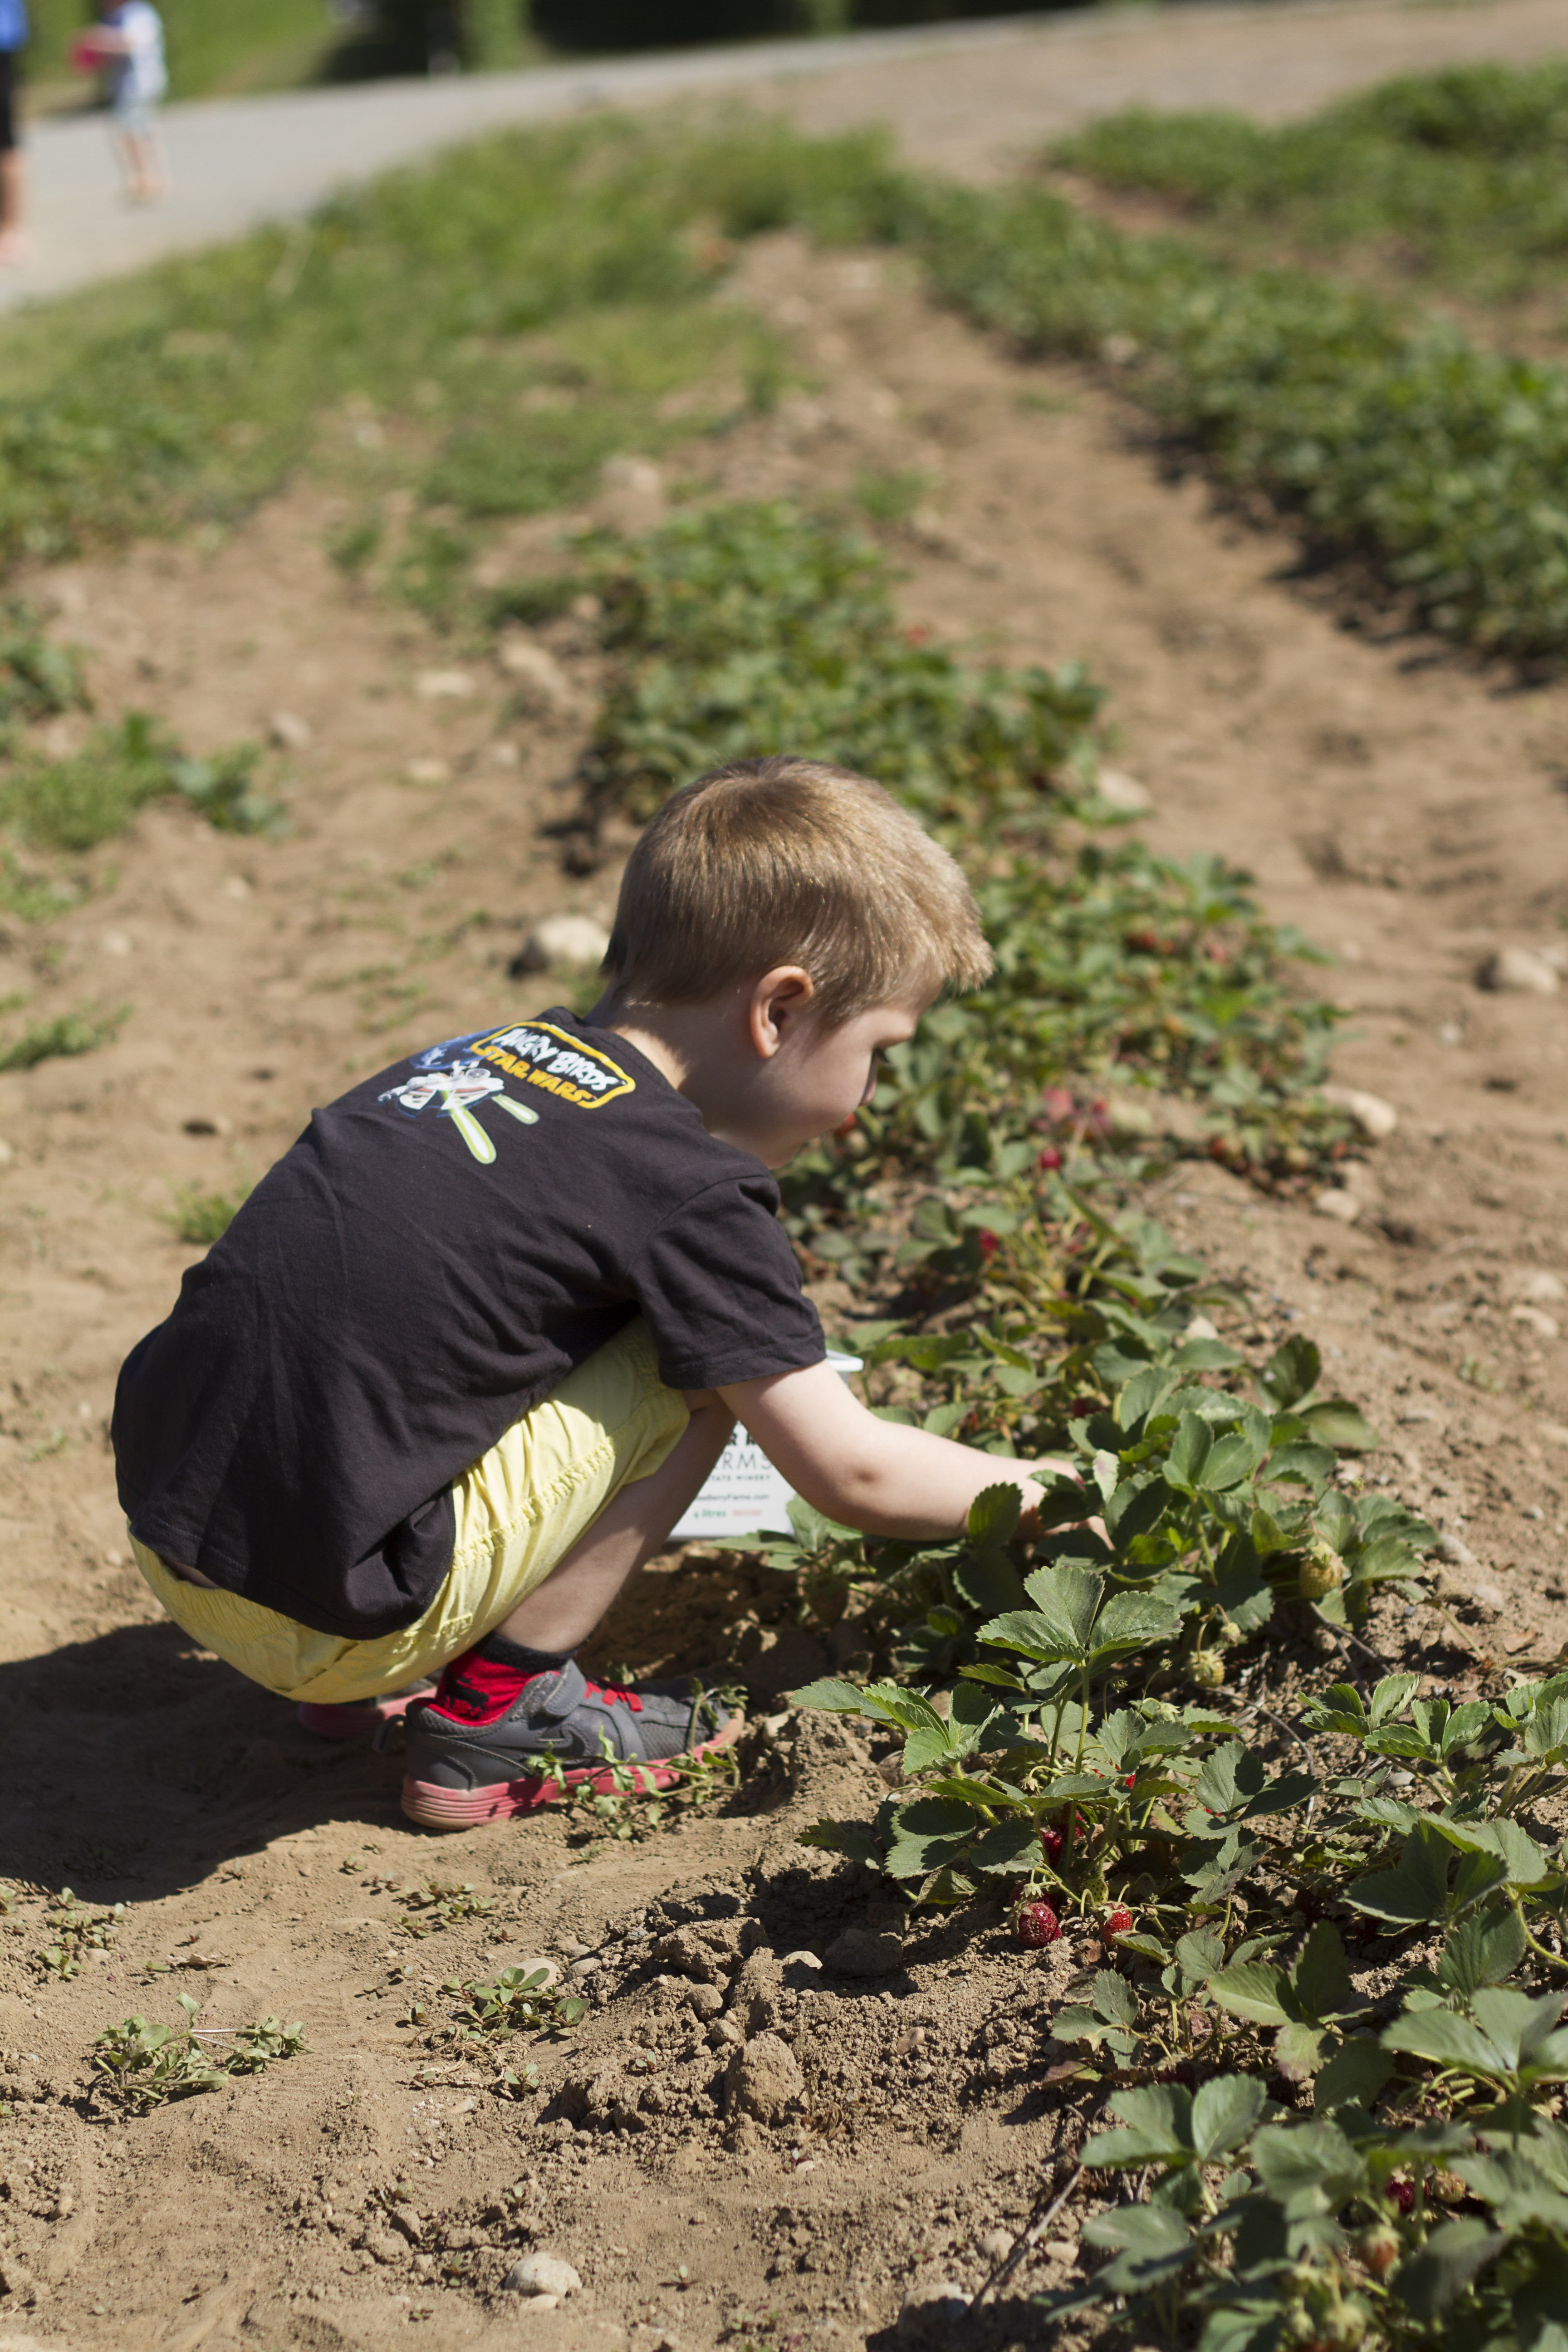 Krause berry farm carpe diem our way20150607_0004